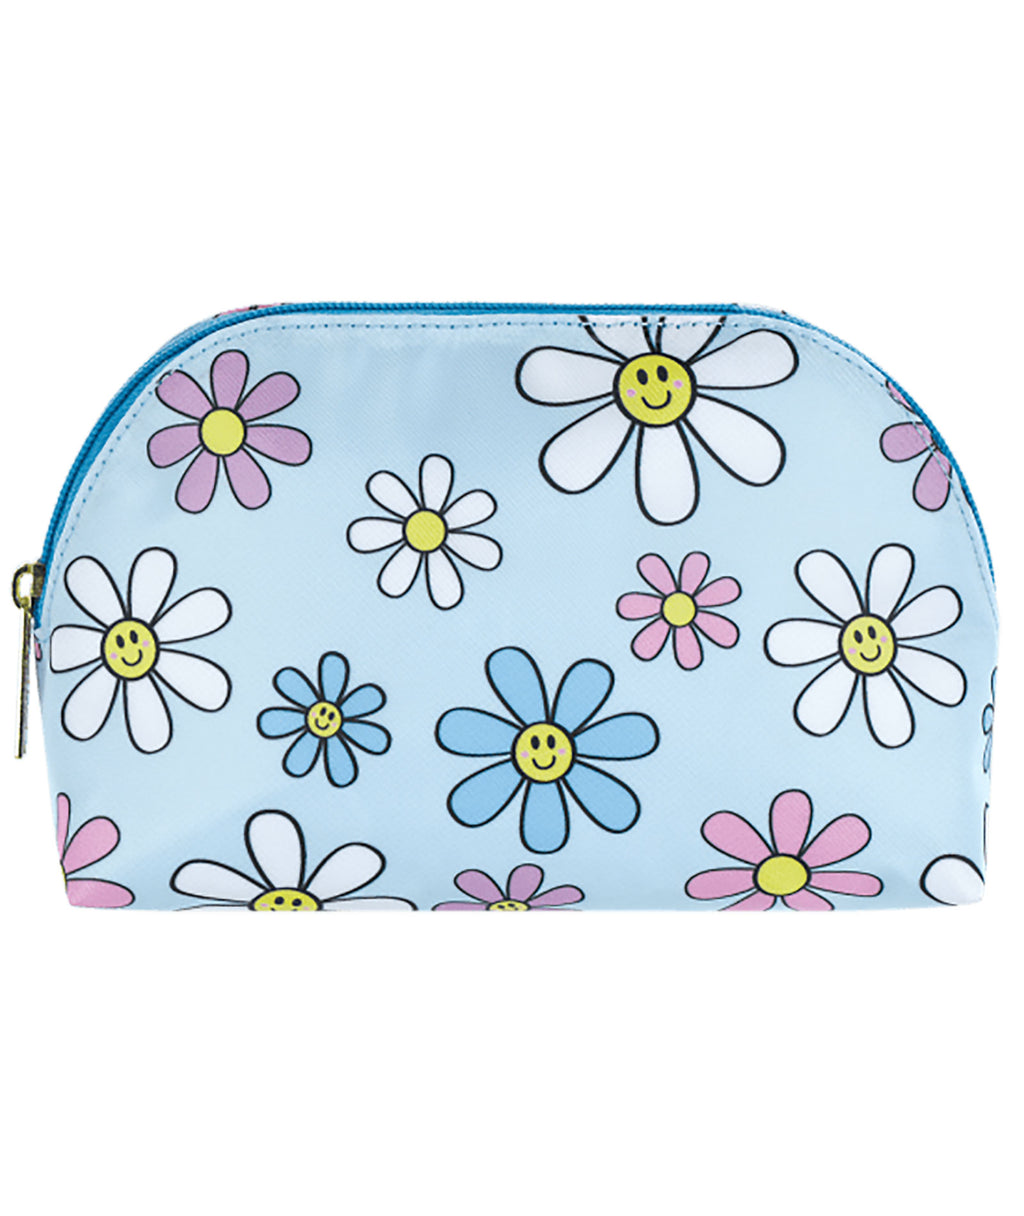 iScream Daisies Oval Cosmetic Bag